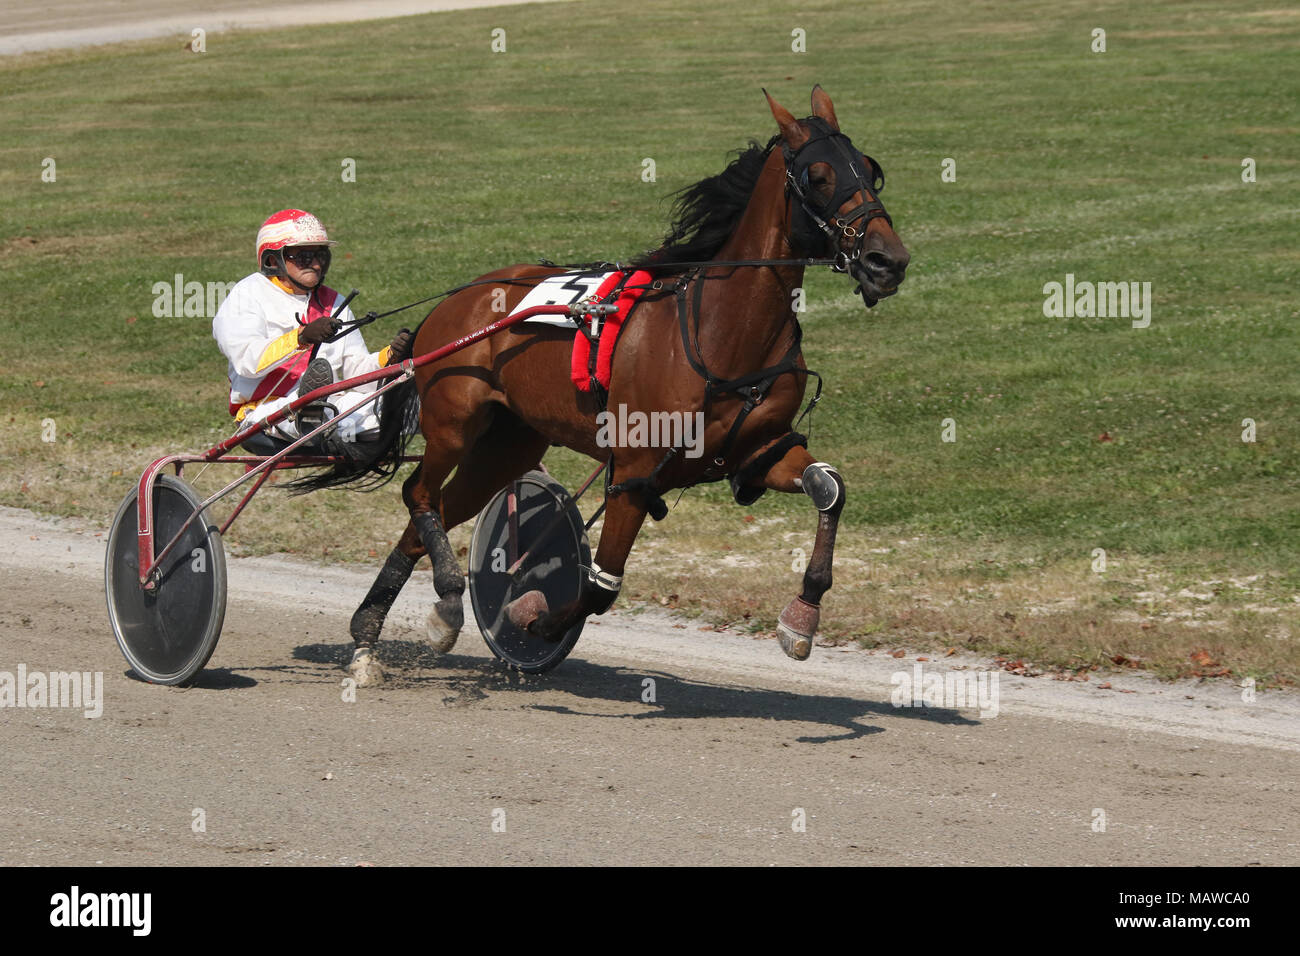 Male rider. Horse Harness Racing. Canfield Fair. Mahoning County Fair. Canfield, Youngstown, Ohio, USA. - Stock Image